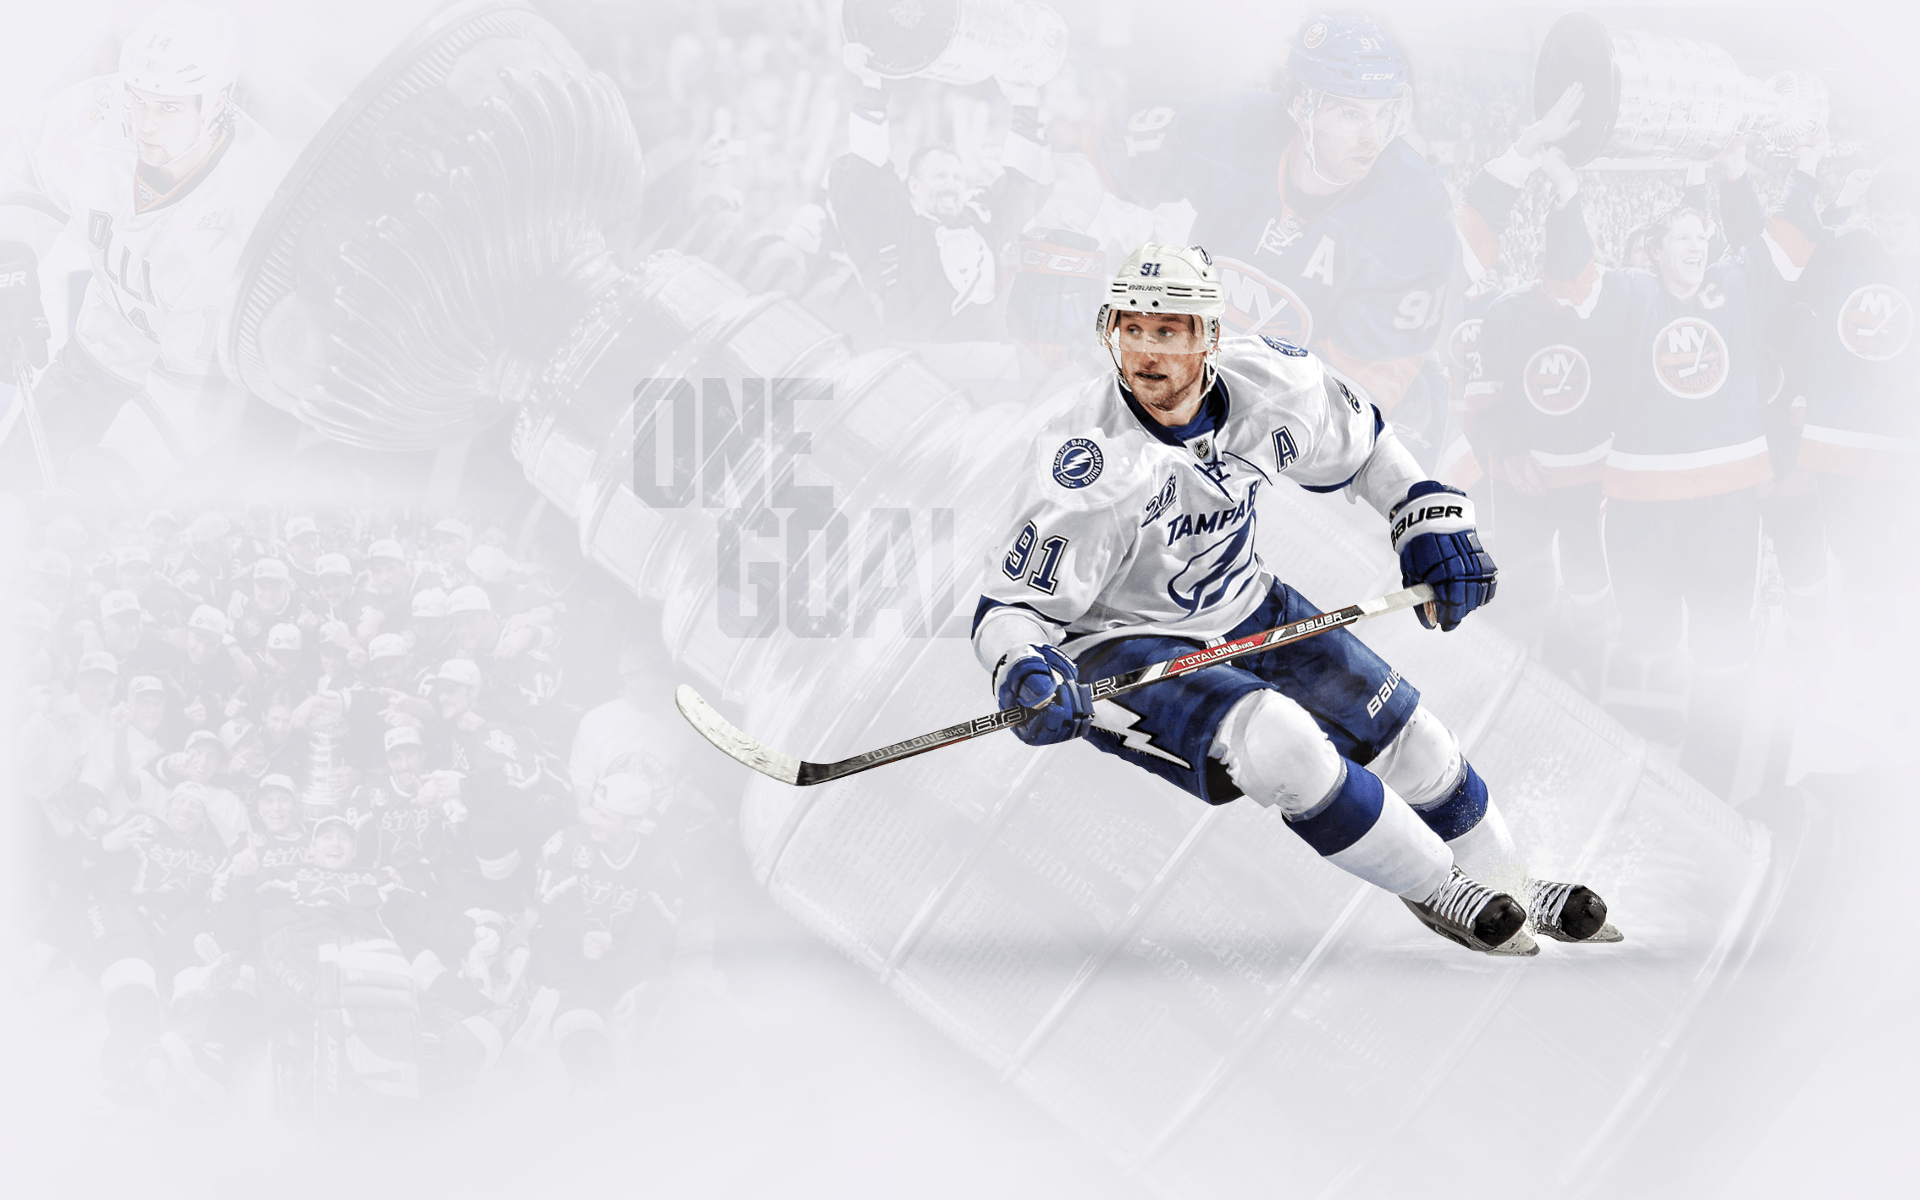 Islanders John Tavares wallpapers and images - wallpapers, pictures ...